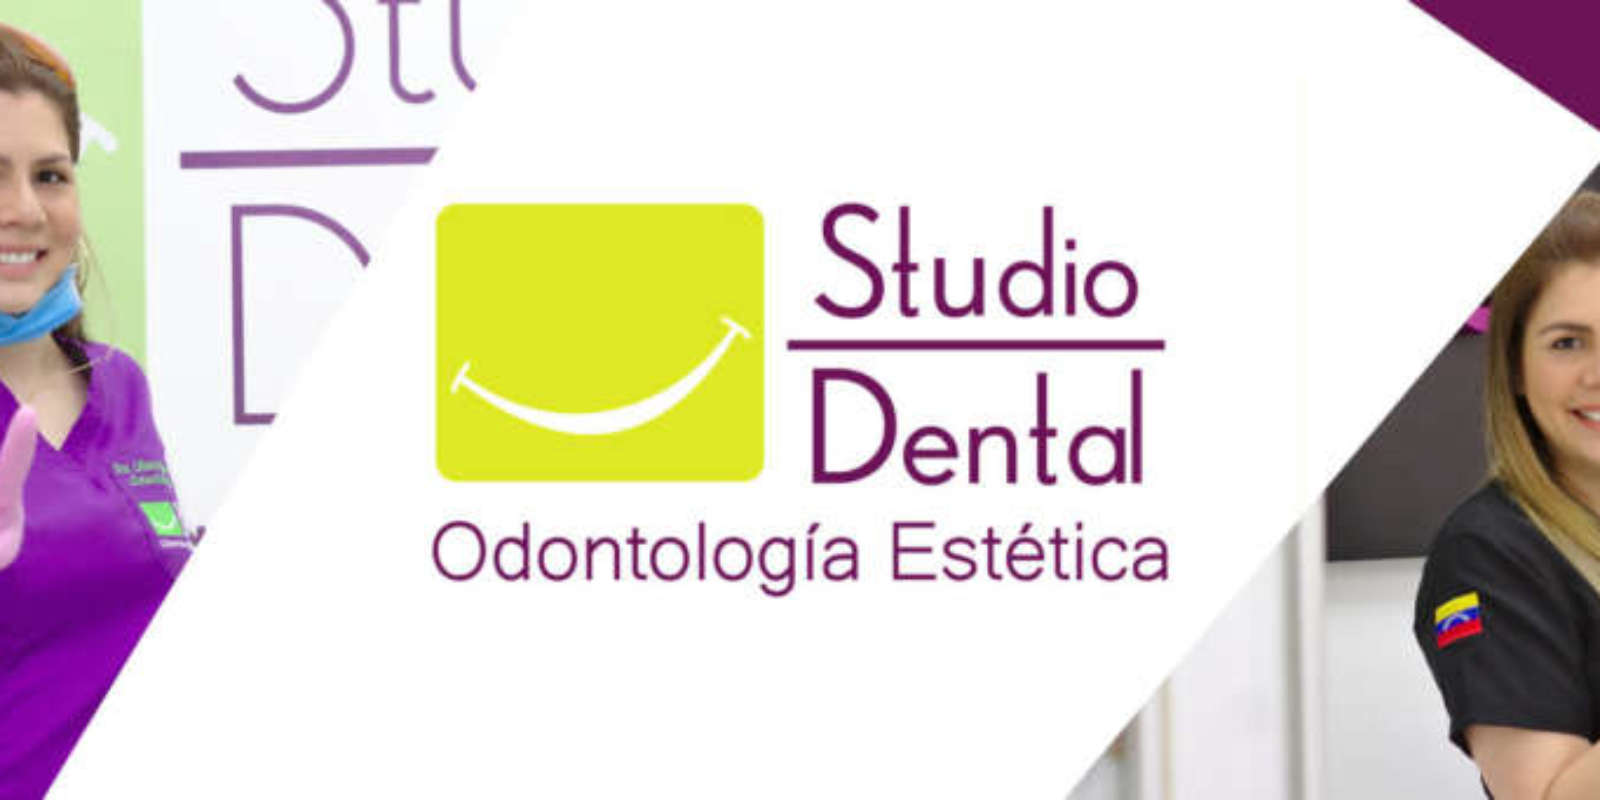 Studio-Dental-header